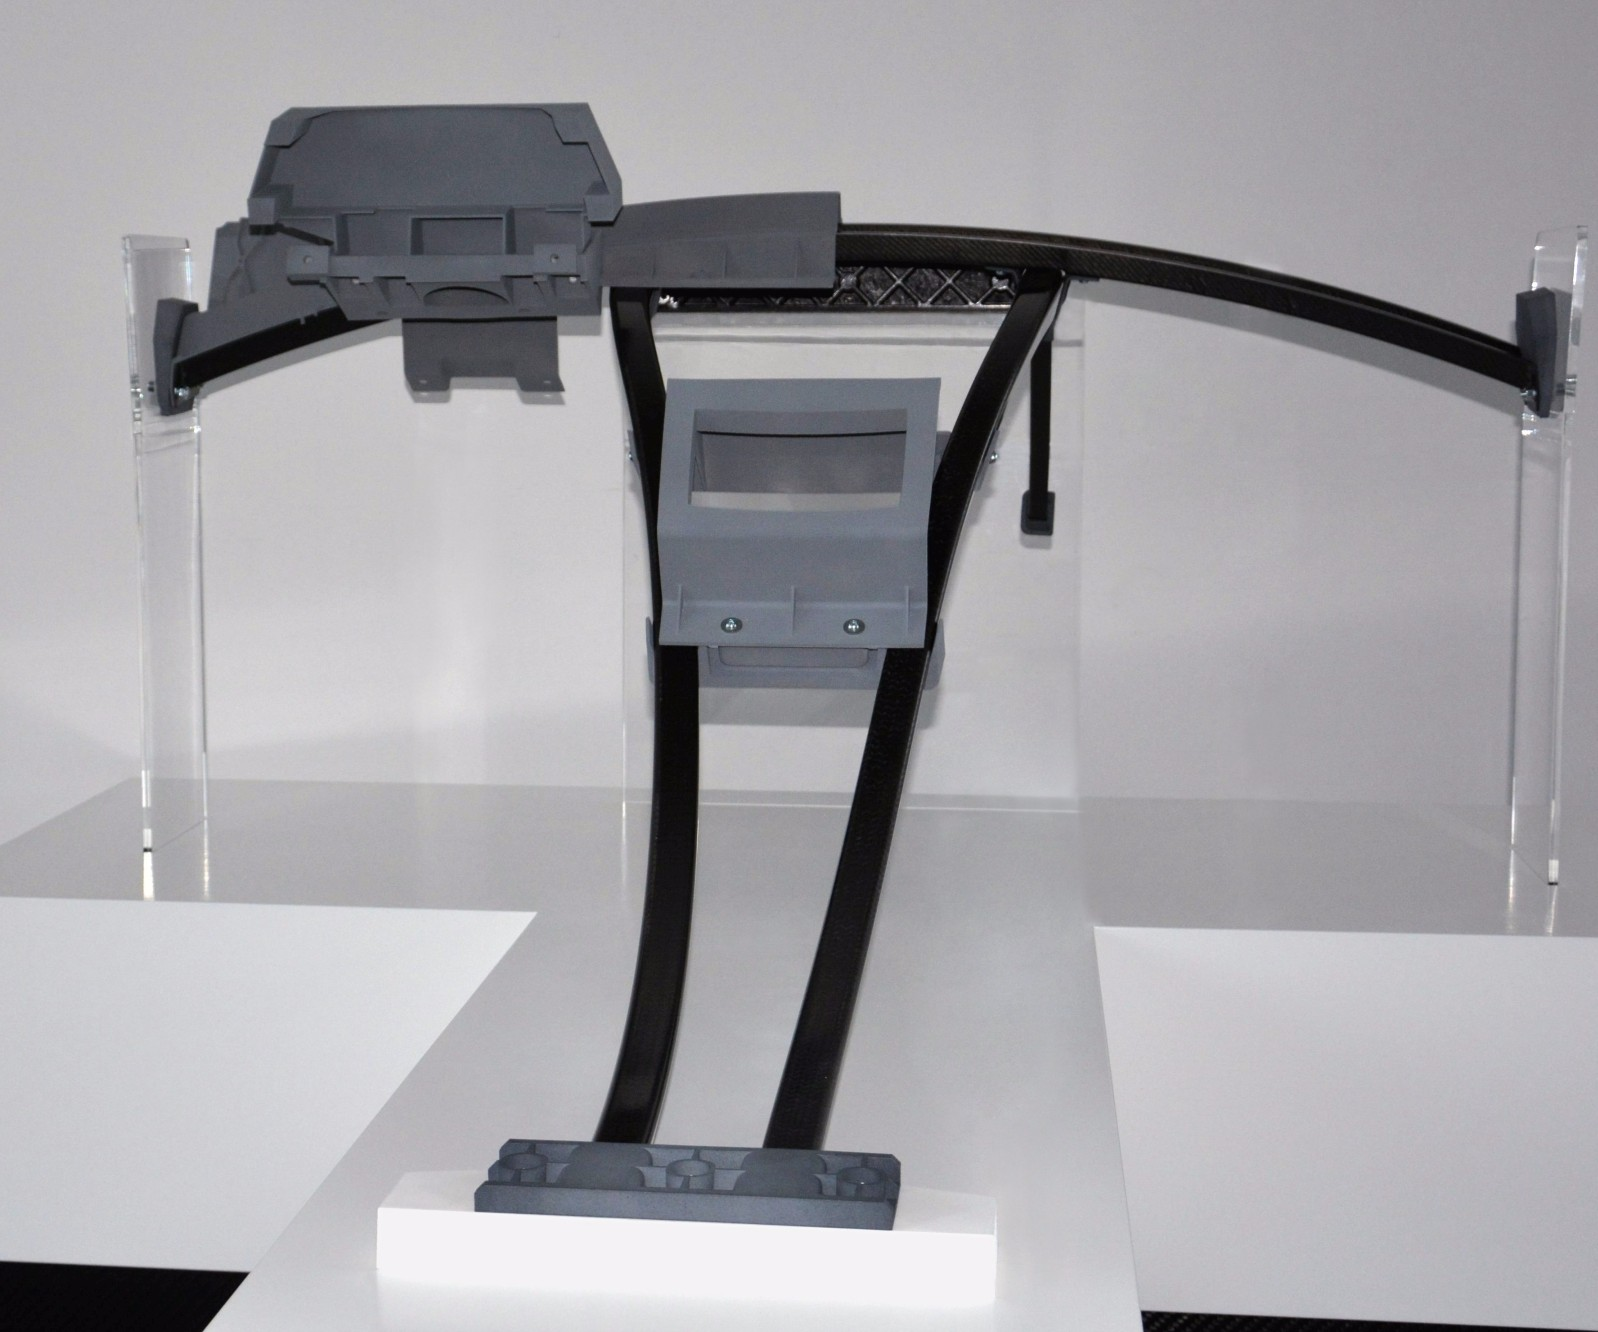 SGL and Bertrandt's Carbon Carrier for auto interiors